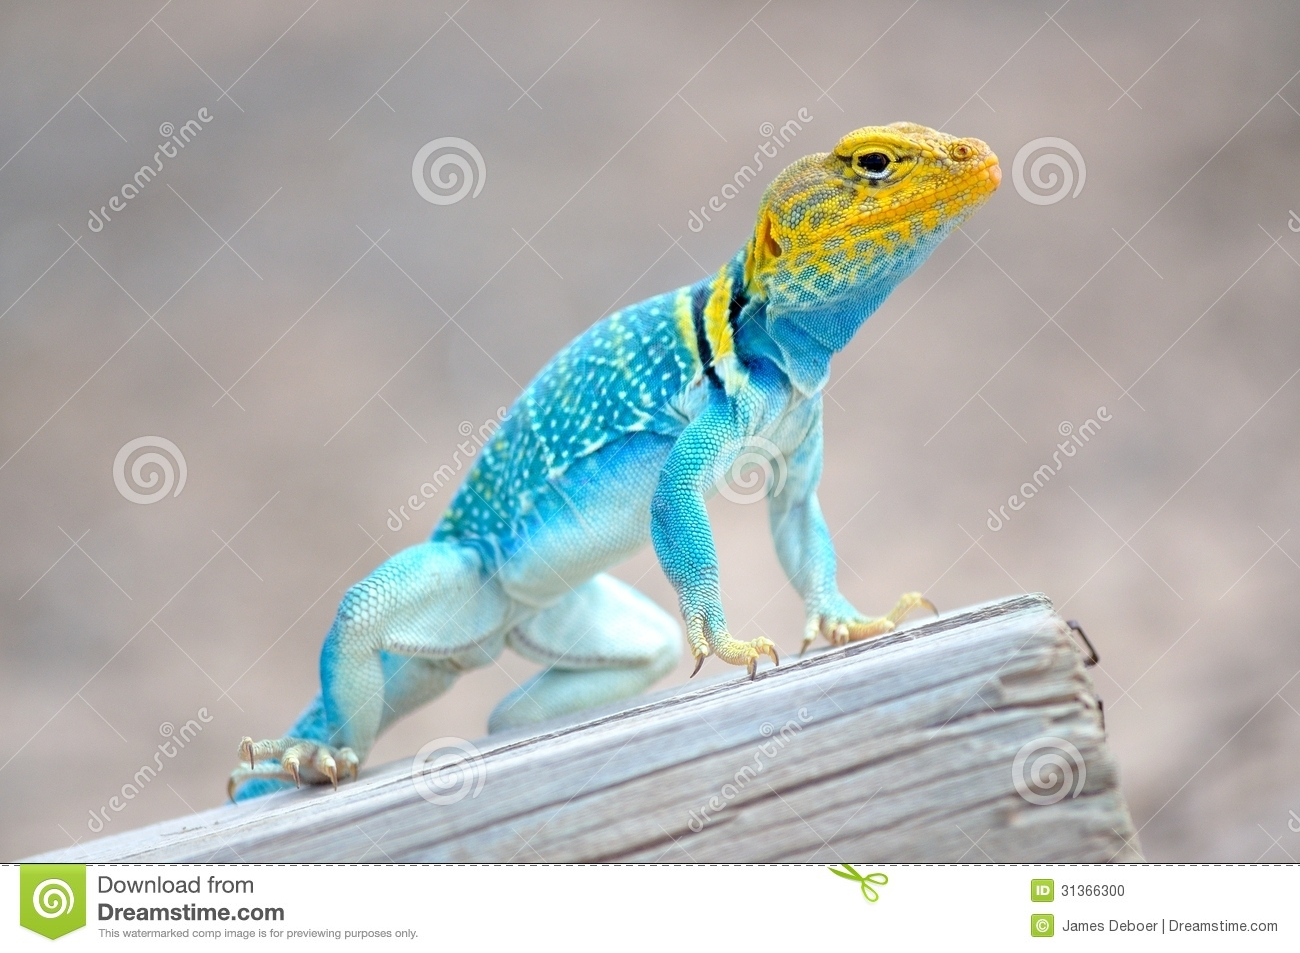 Collared Lizard clipart #14, Download drawings